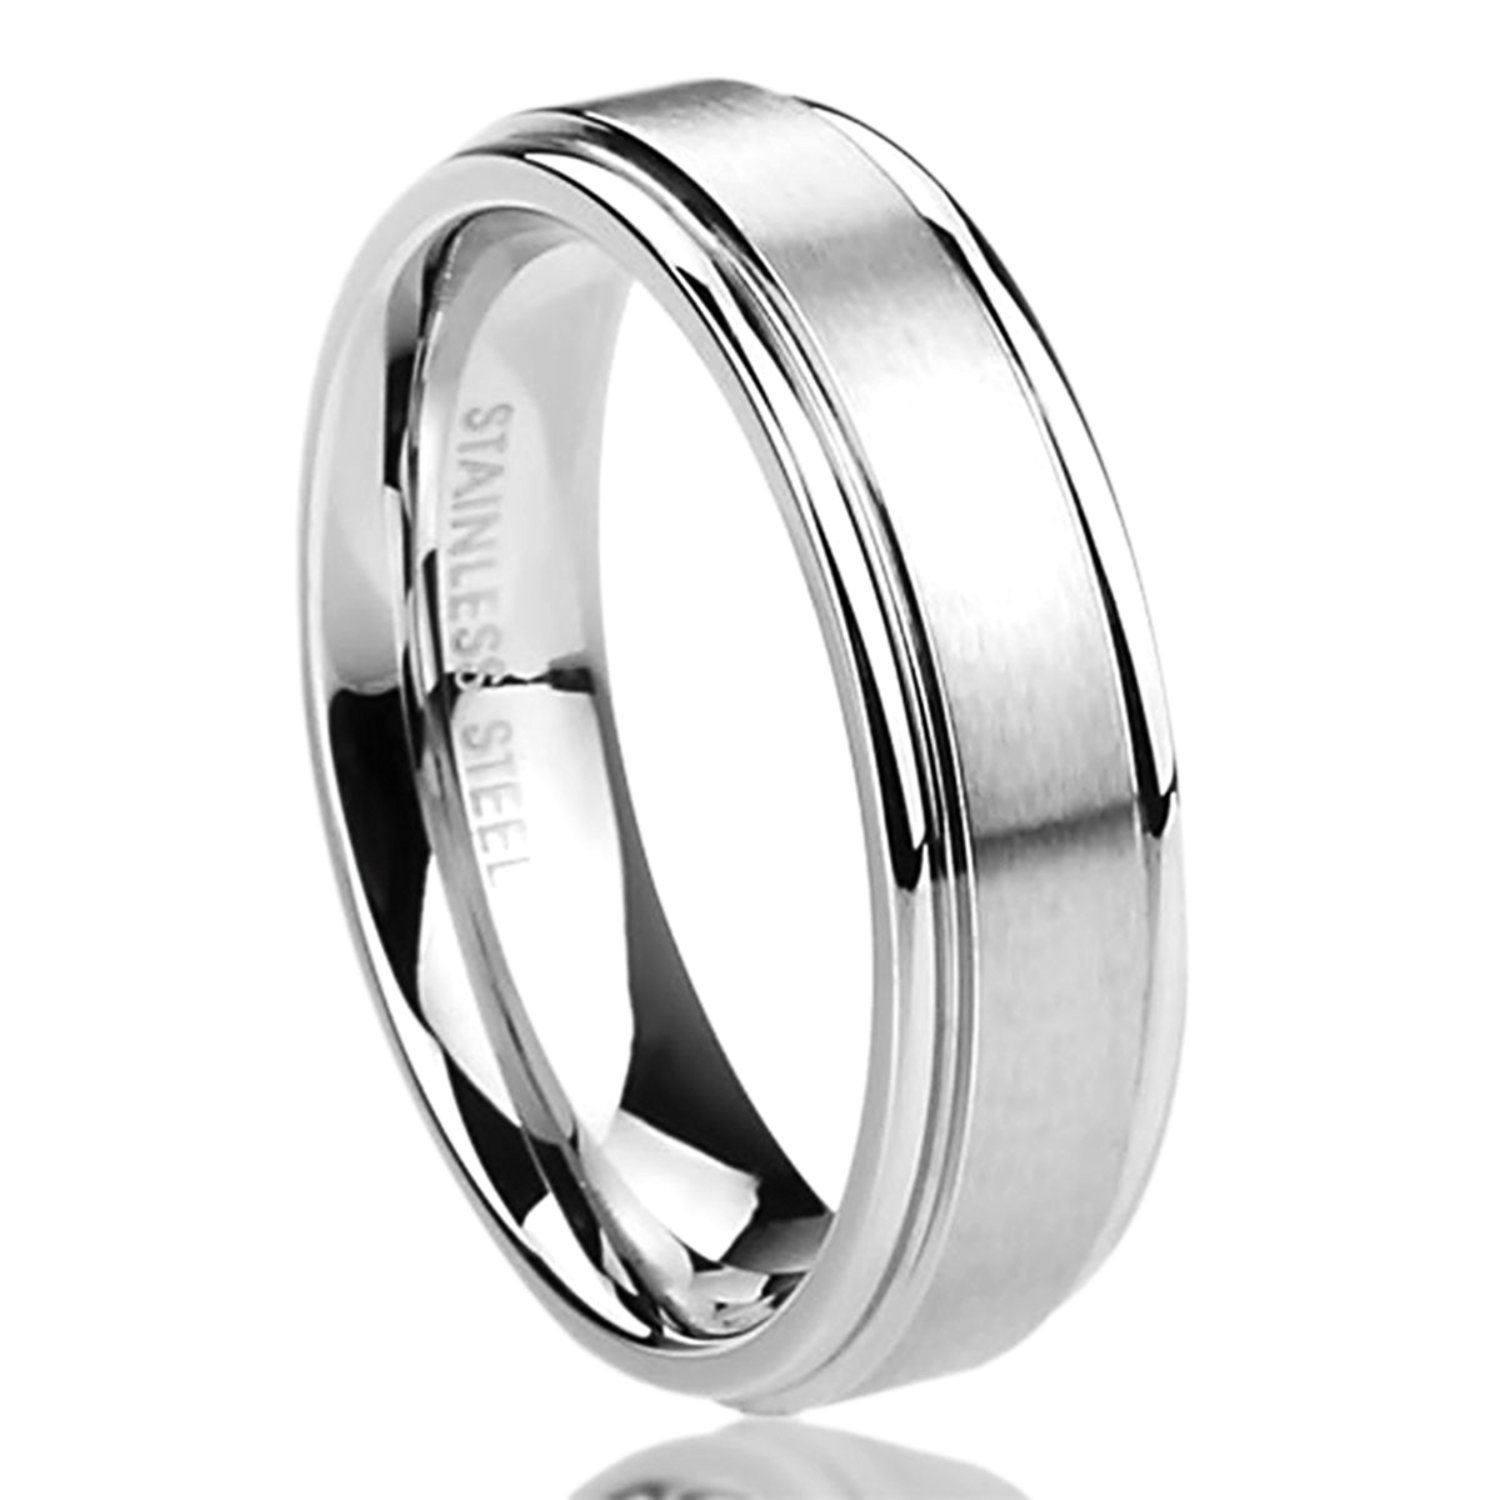 Prime Pristine 6MM Stainless Steel Mens Womens Rings Brushed Center Classy Comfort Fit Wedding Bands